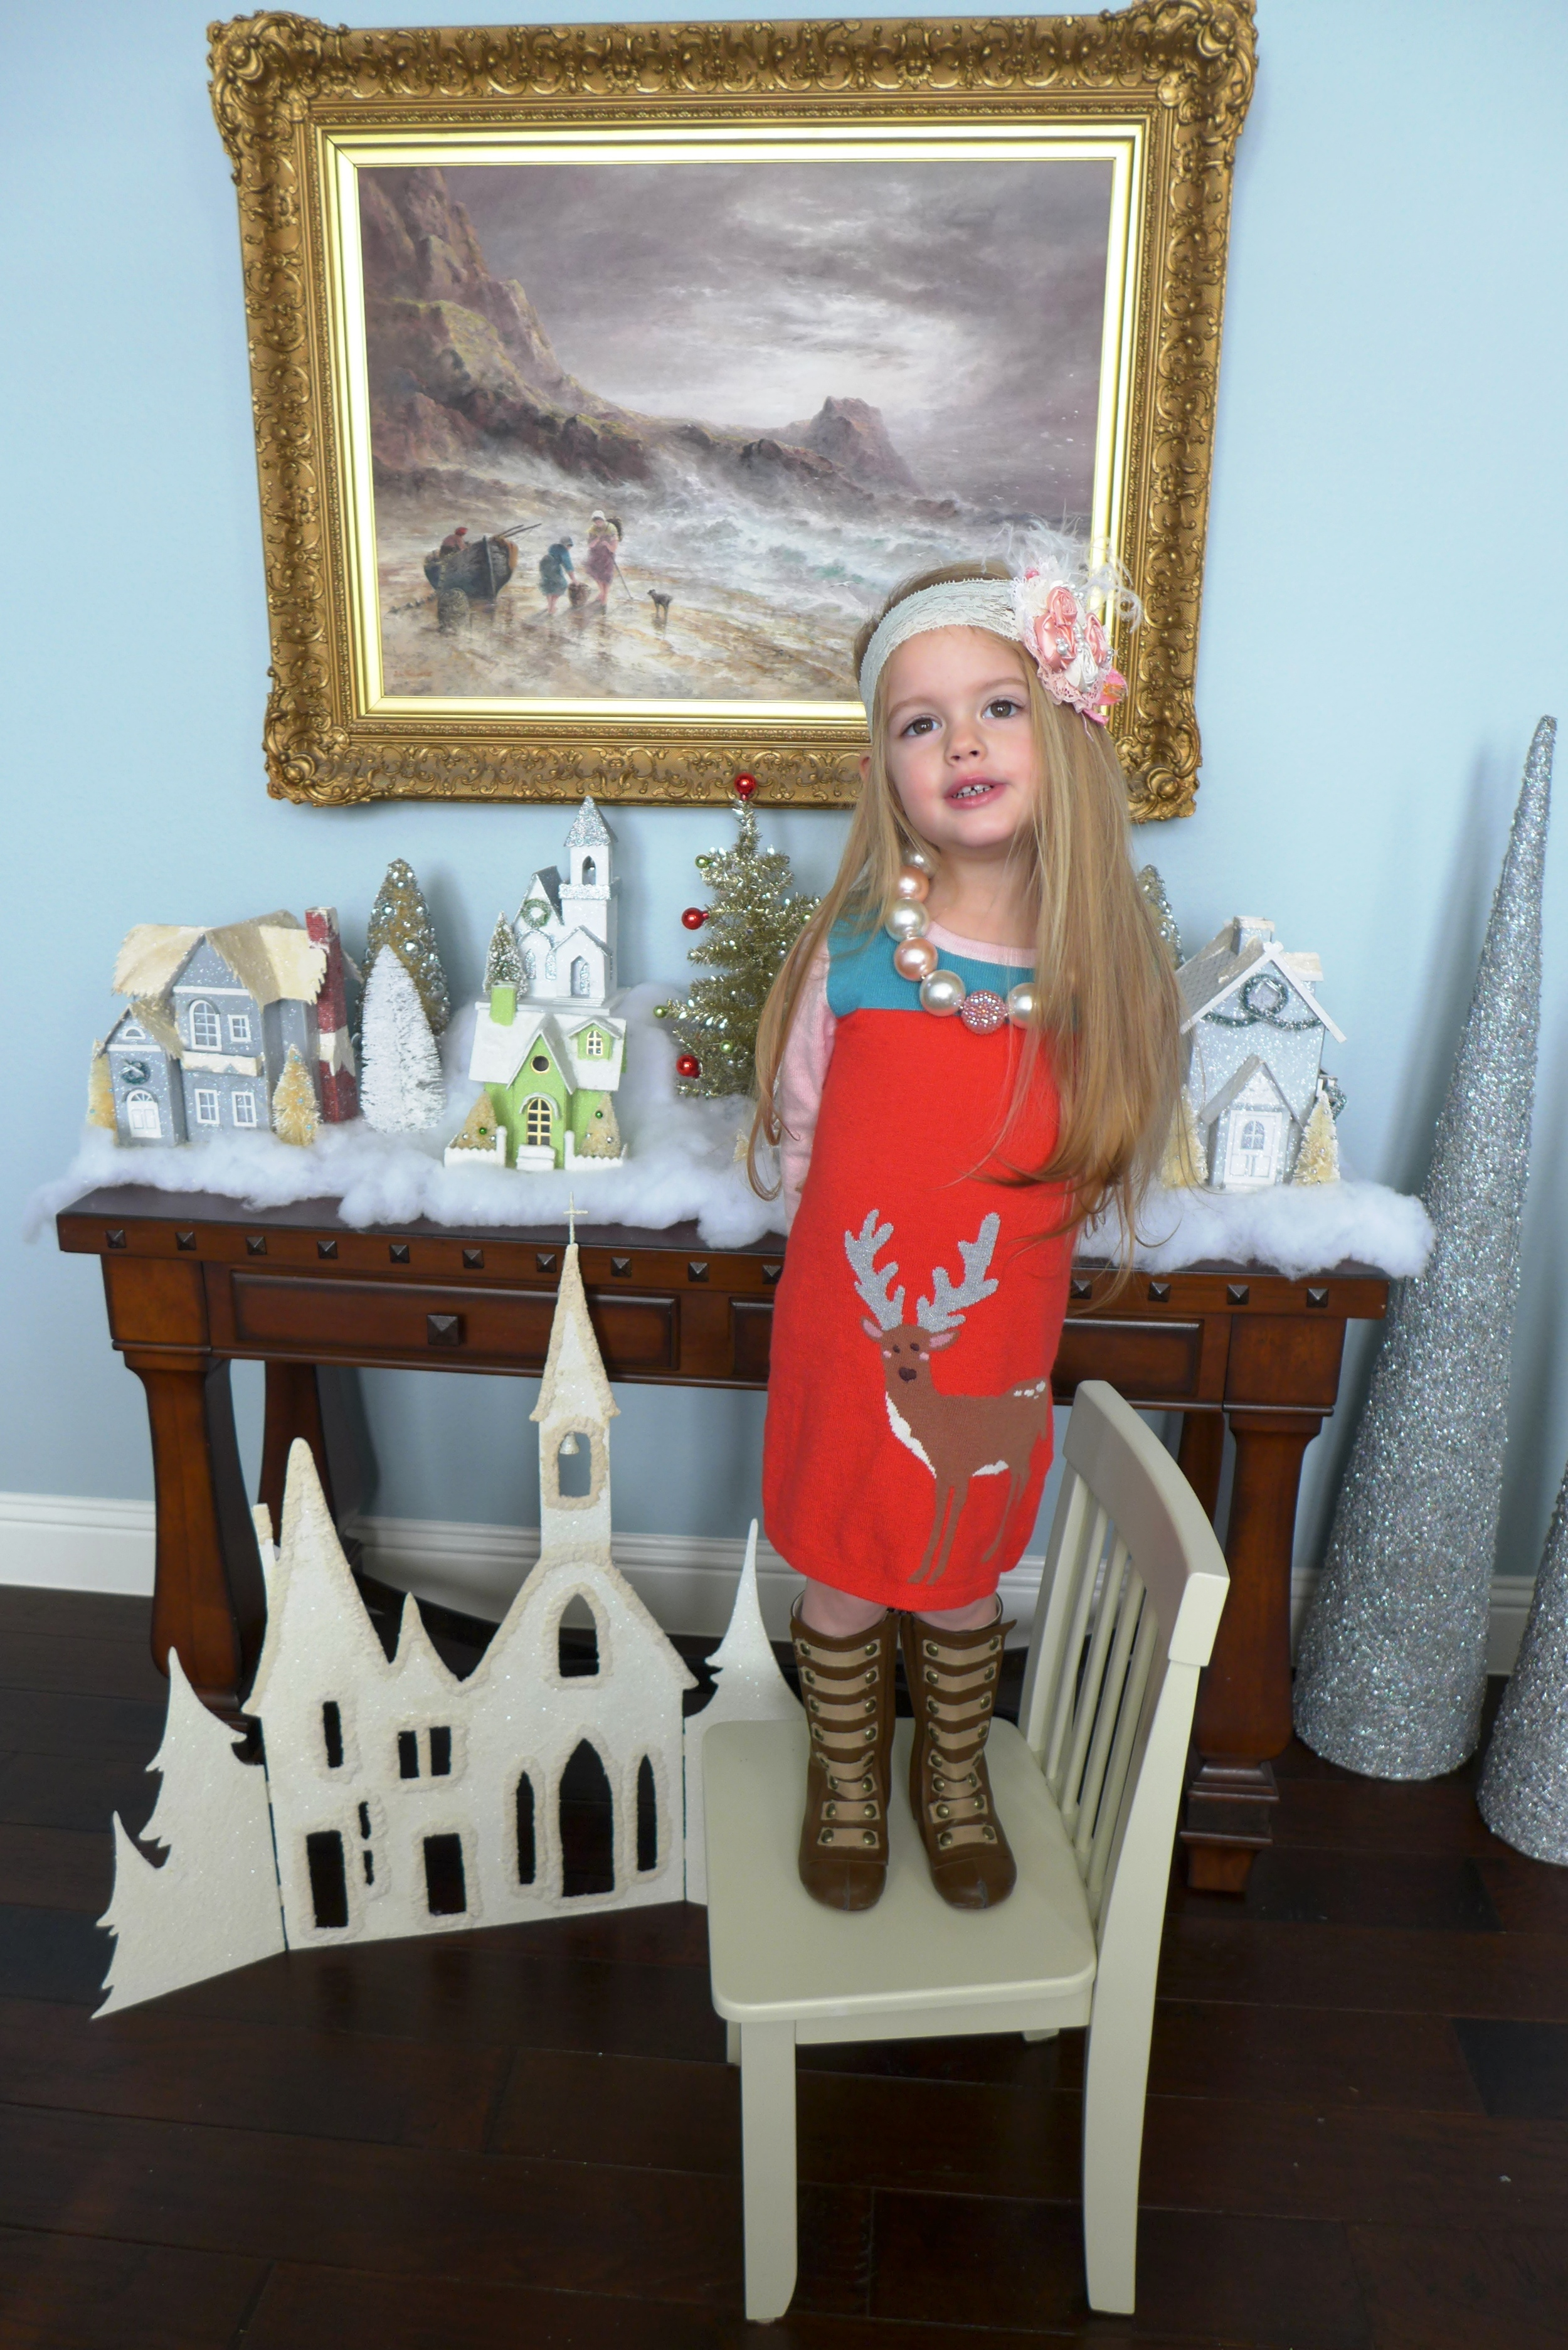 Mini Boden Woodland Reindeer Knitted Dress  Joyfolie Leighton Boots  Headband: Appelilly Couture  Necklace: Green Apple Girlys